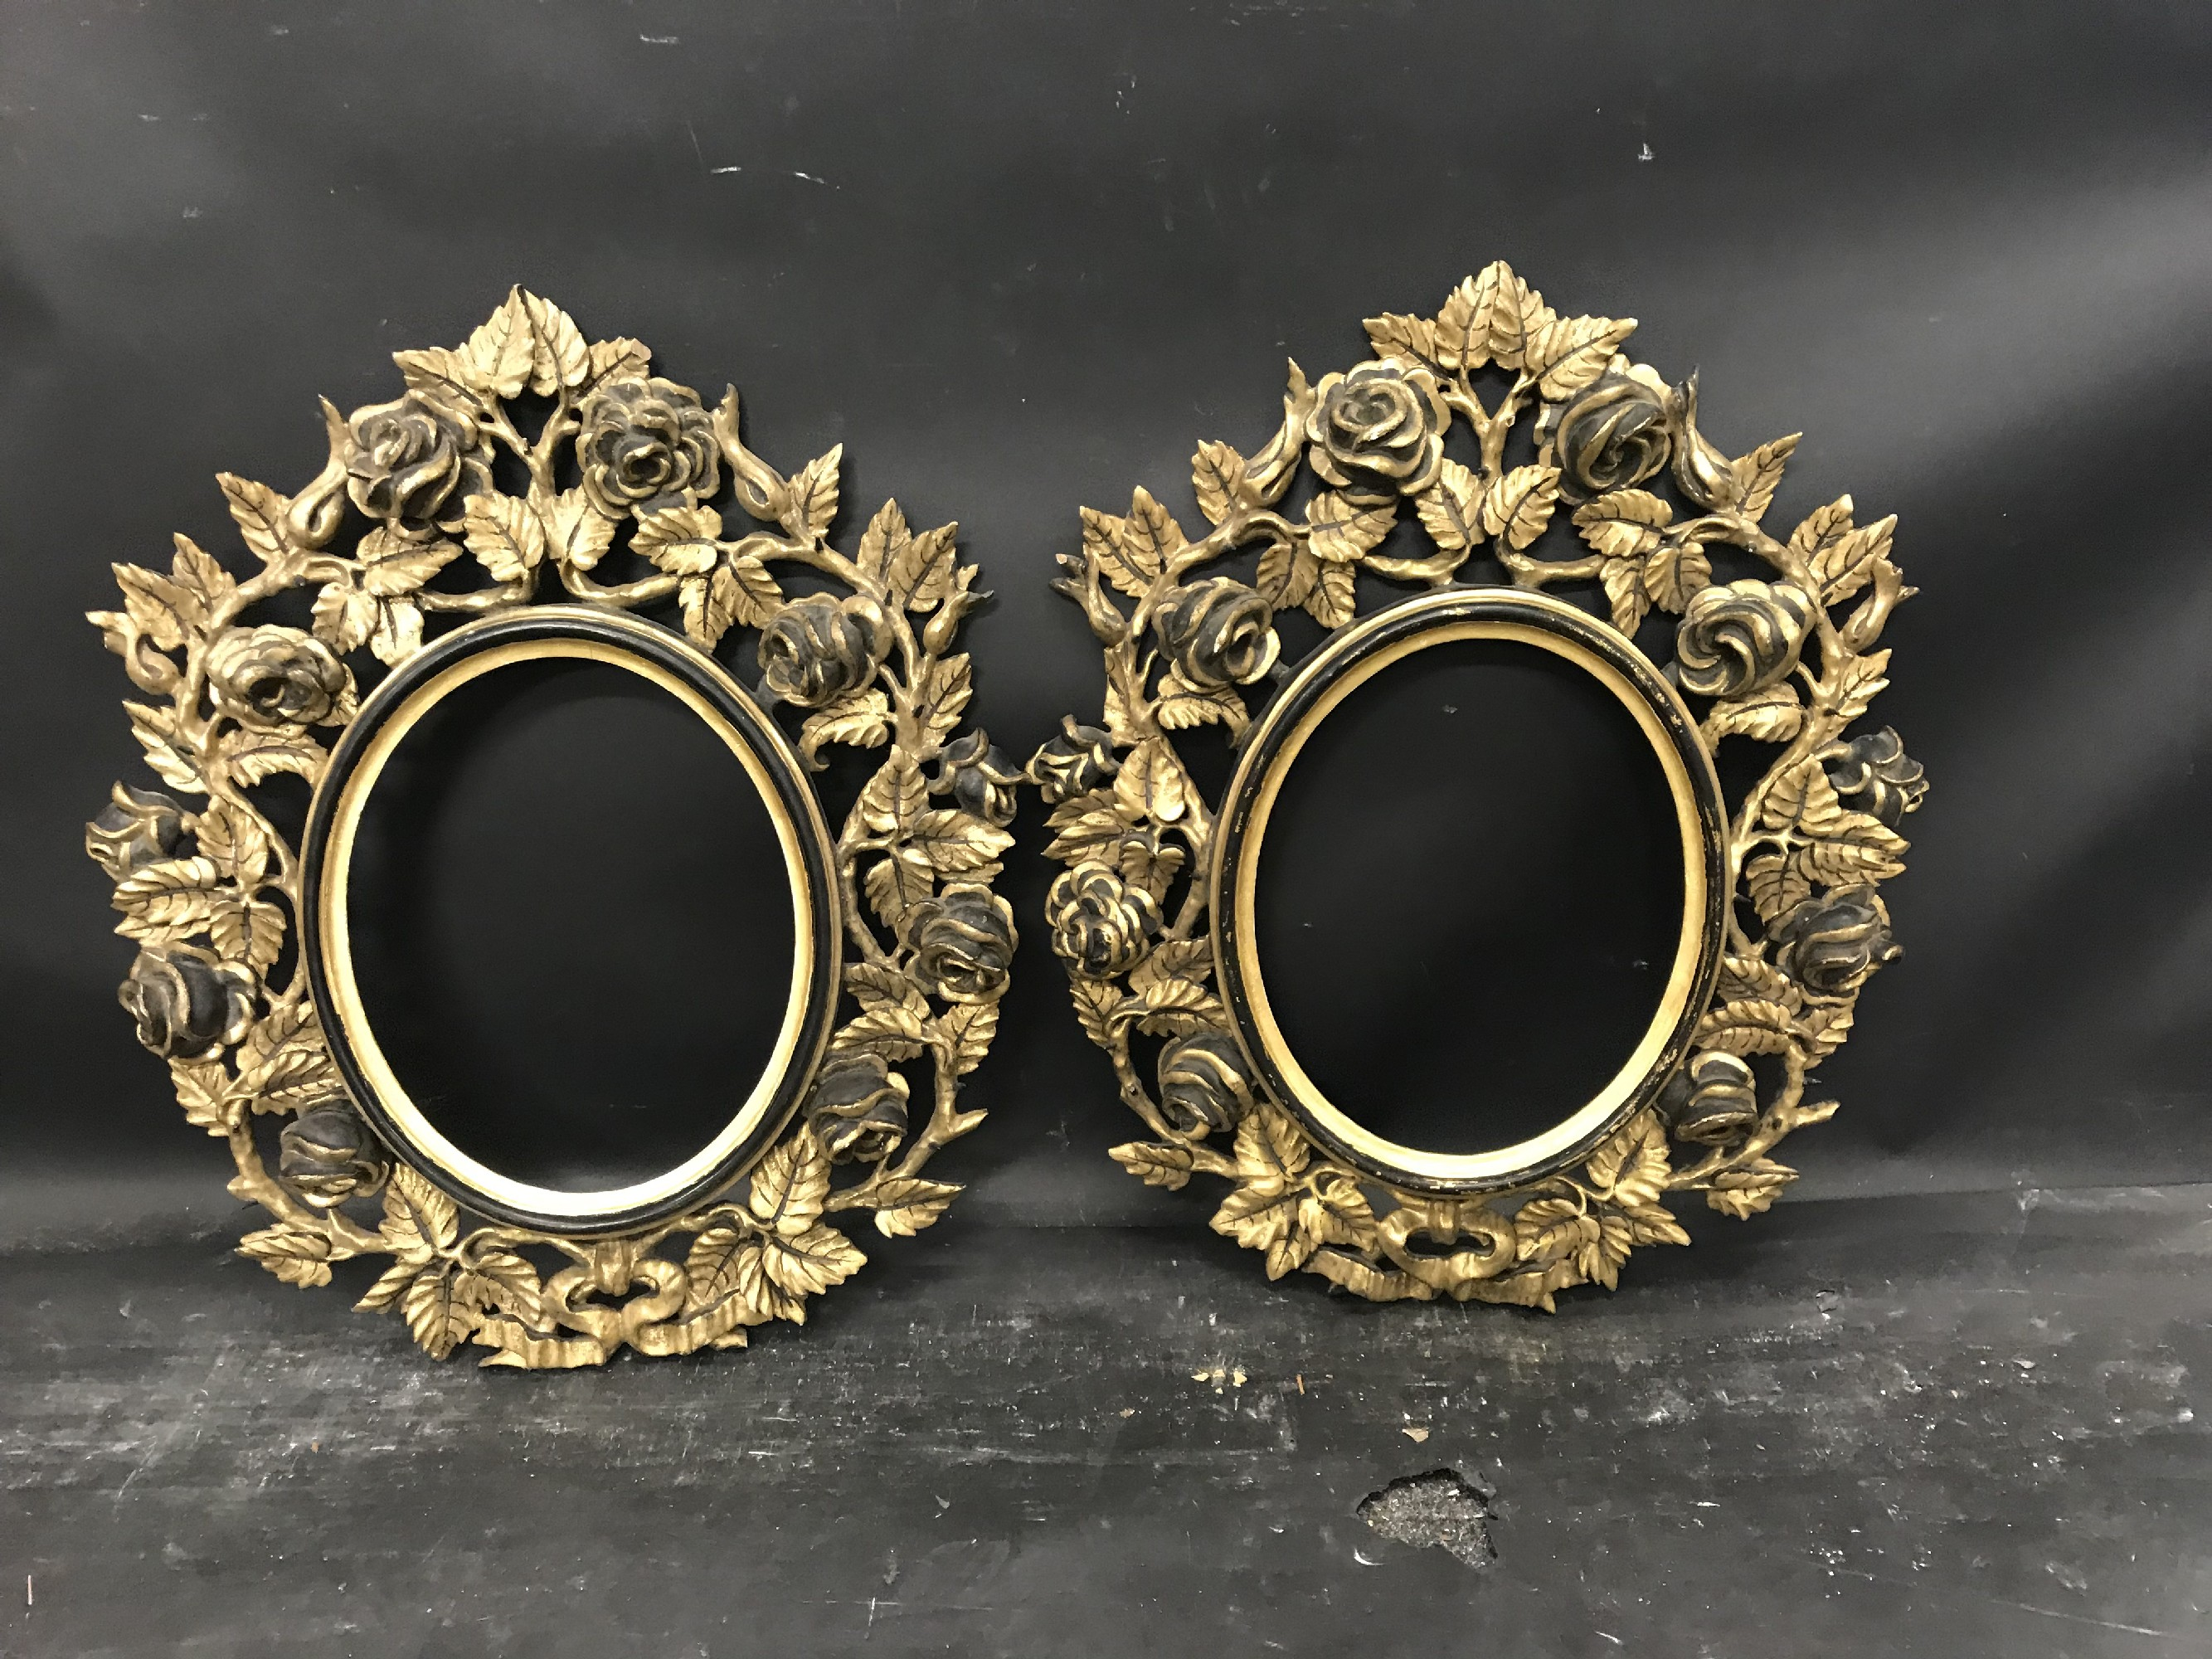 """Lot 49 - 19th Century Italian School. A Carved Giltwood and Black Painted Carved Frame, Oval, 10.5"""" x 8.5"""","""